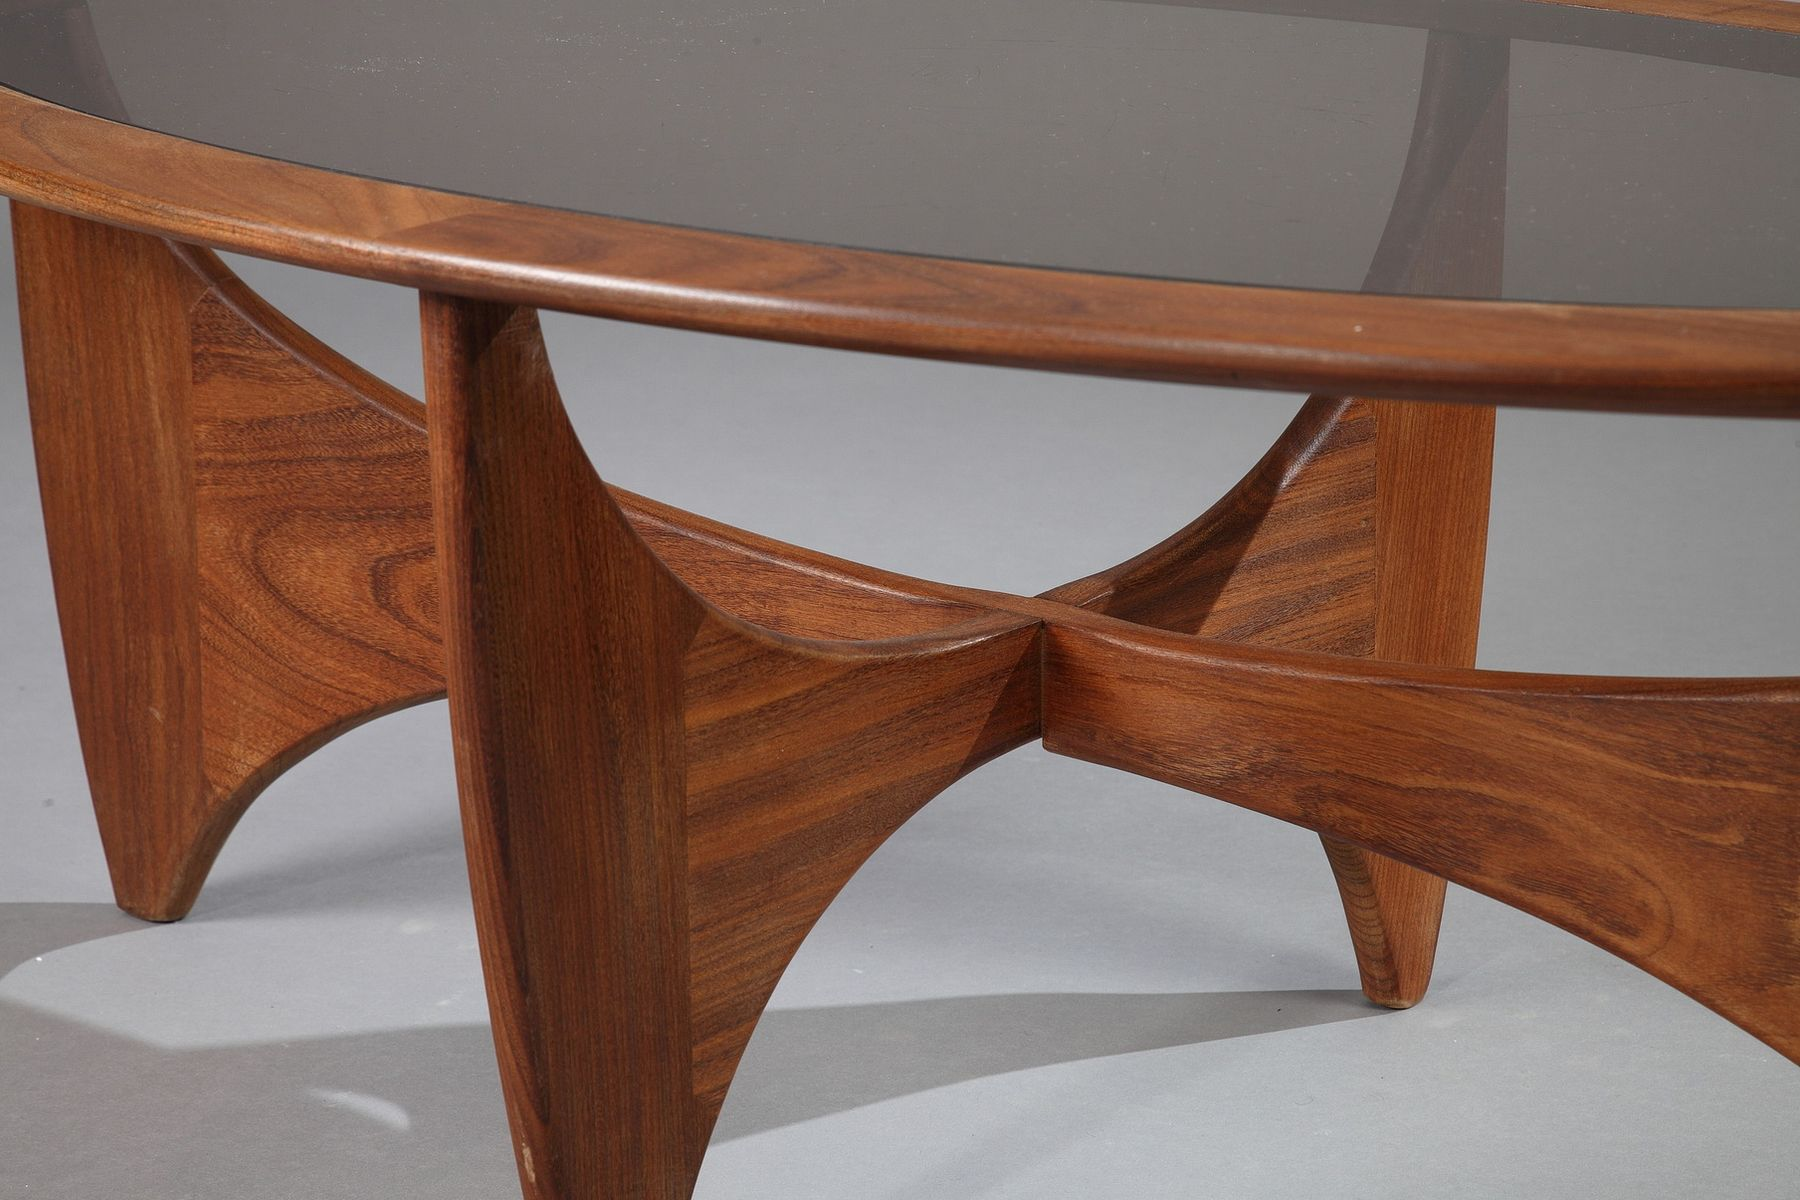 Astro coffee table by victor wilkins for g plan 1960s for sale at astro coffee table by victor wilkins for g plan 1960s geotapseo Images